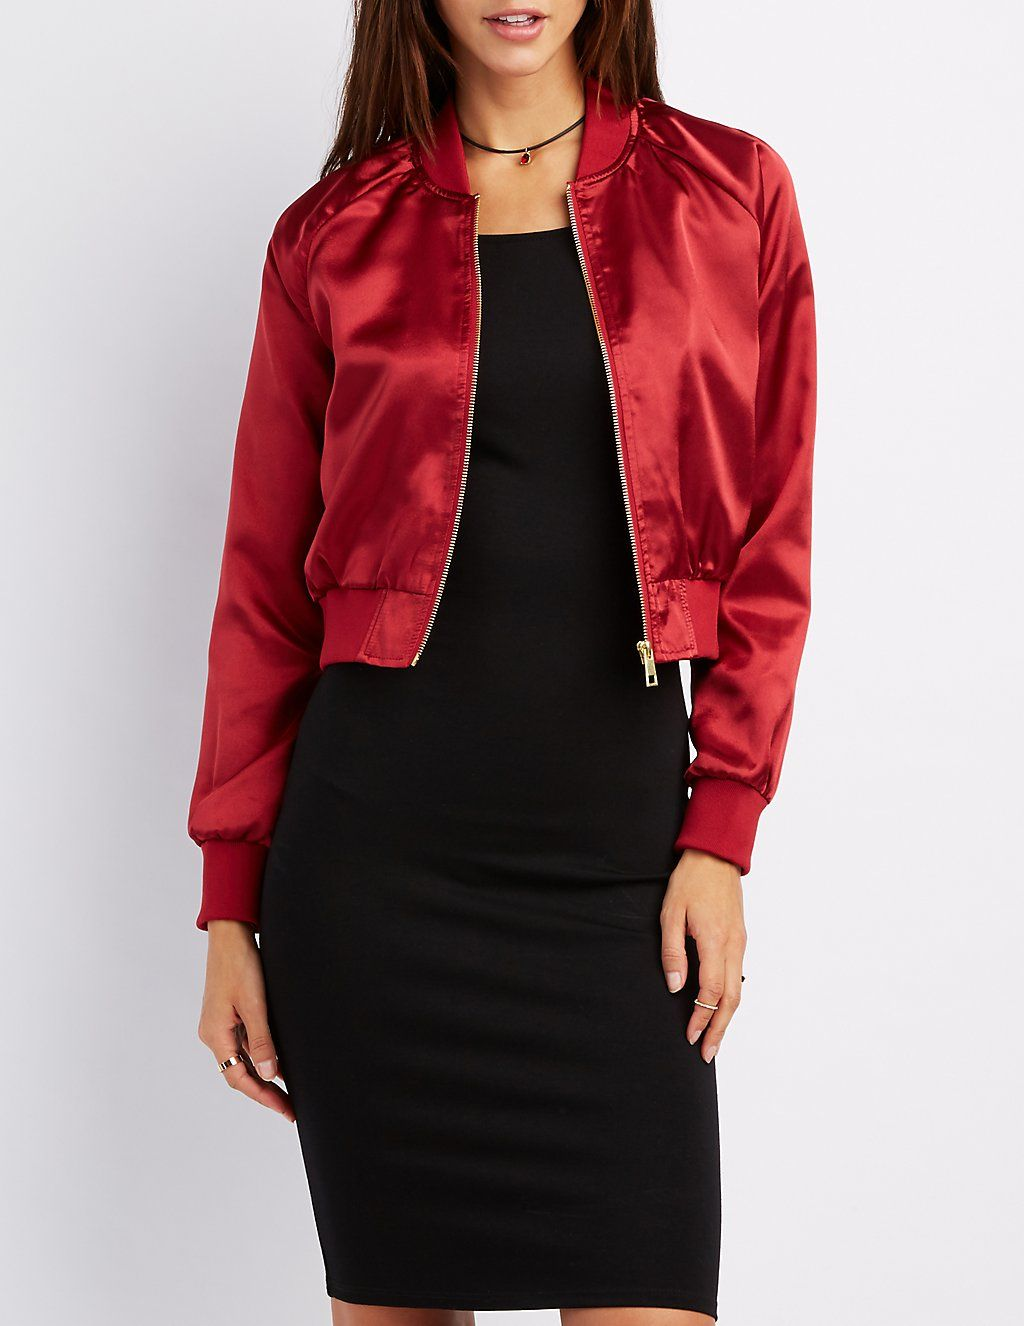 Satin Cropped Bomber Jacket Charlotte Russesatin Cropped Bomber Jacket Standard Price 32 99 Sales Price 23 09 Now 30 Off Read More At Http Bomber Svitshot [ 1326 x 1024 Pixel ]